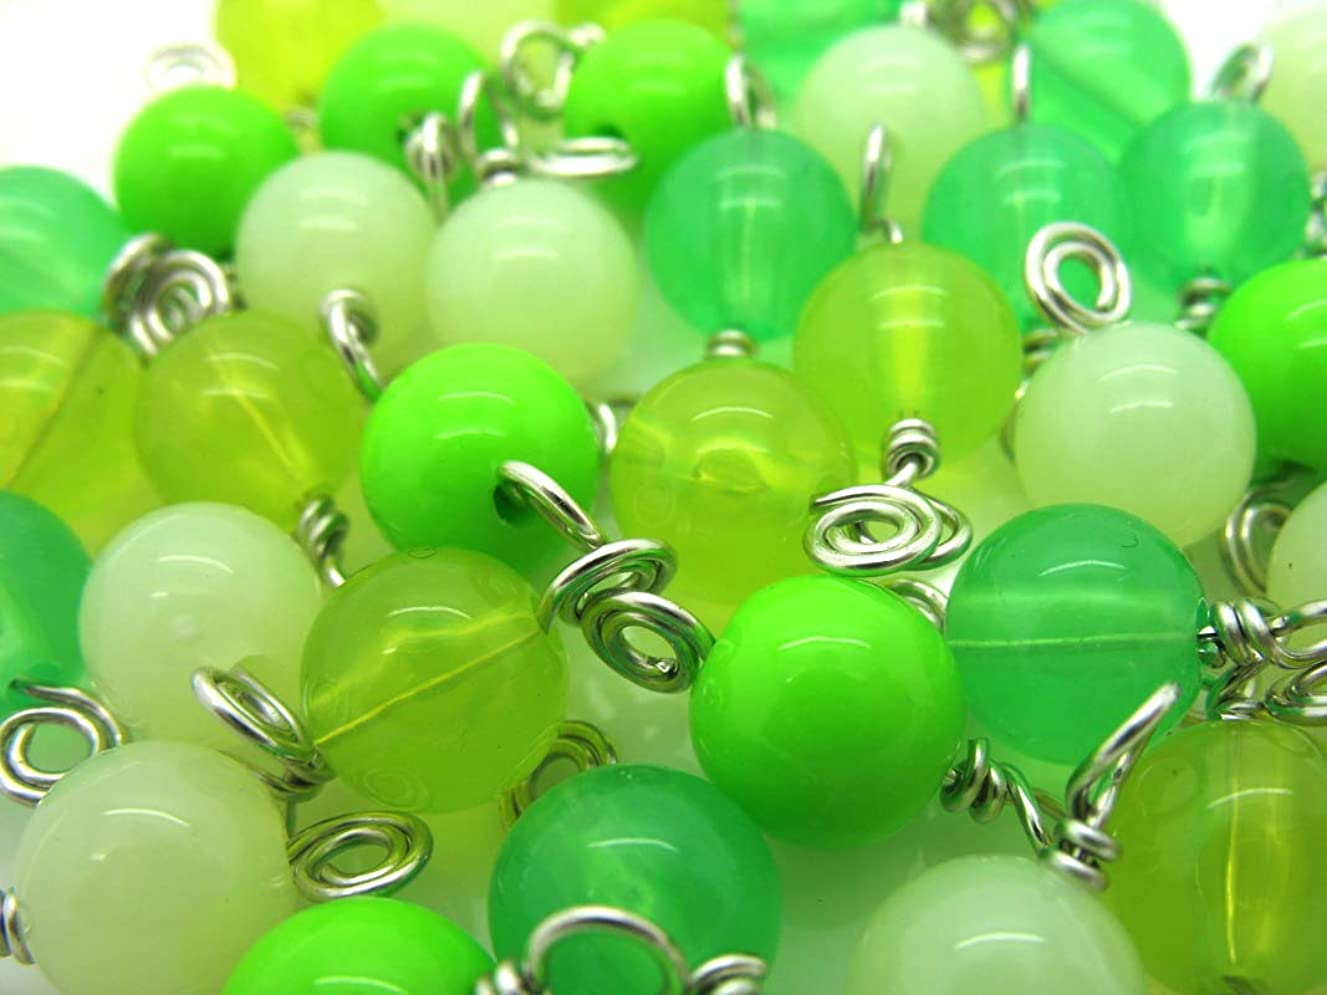 30 Green Acrylic Bead Charms - 8mm Wire-Wrapped Bead Dangles - Dangle Charms